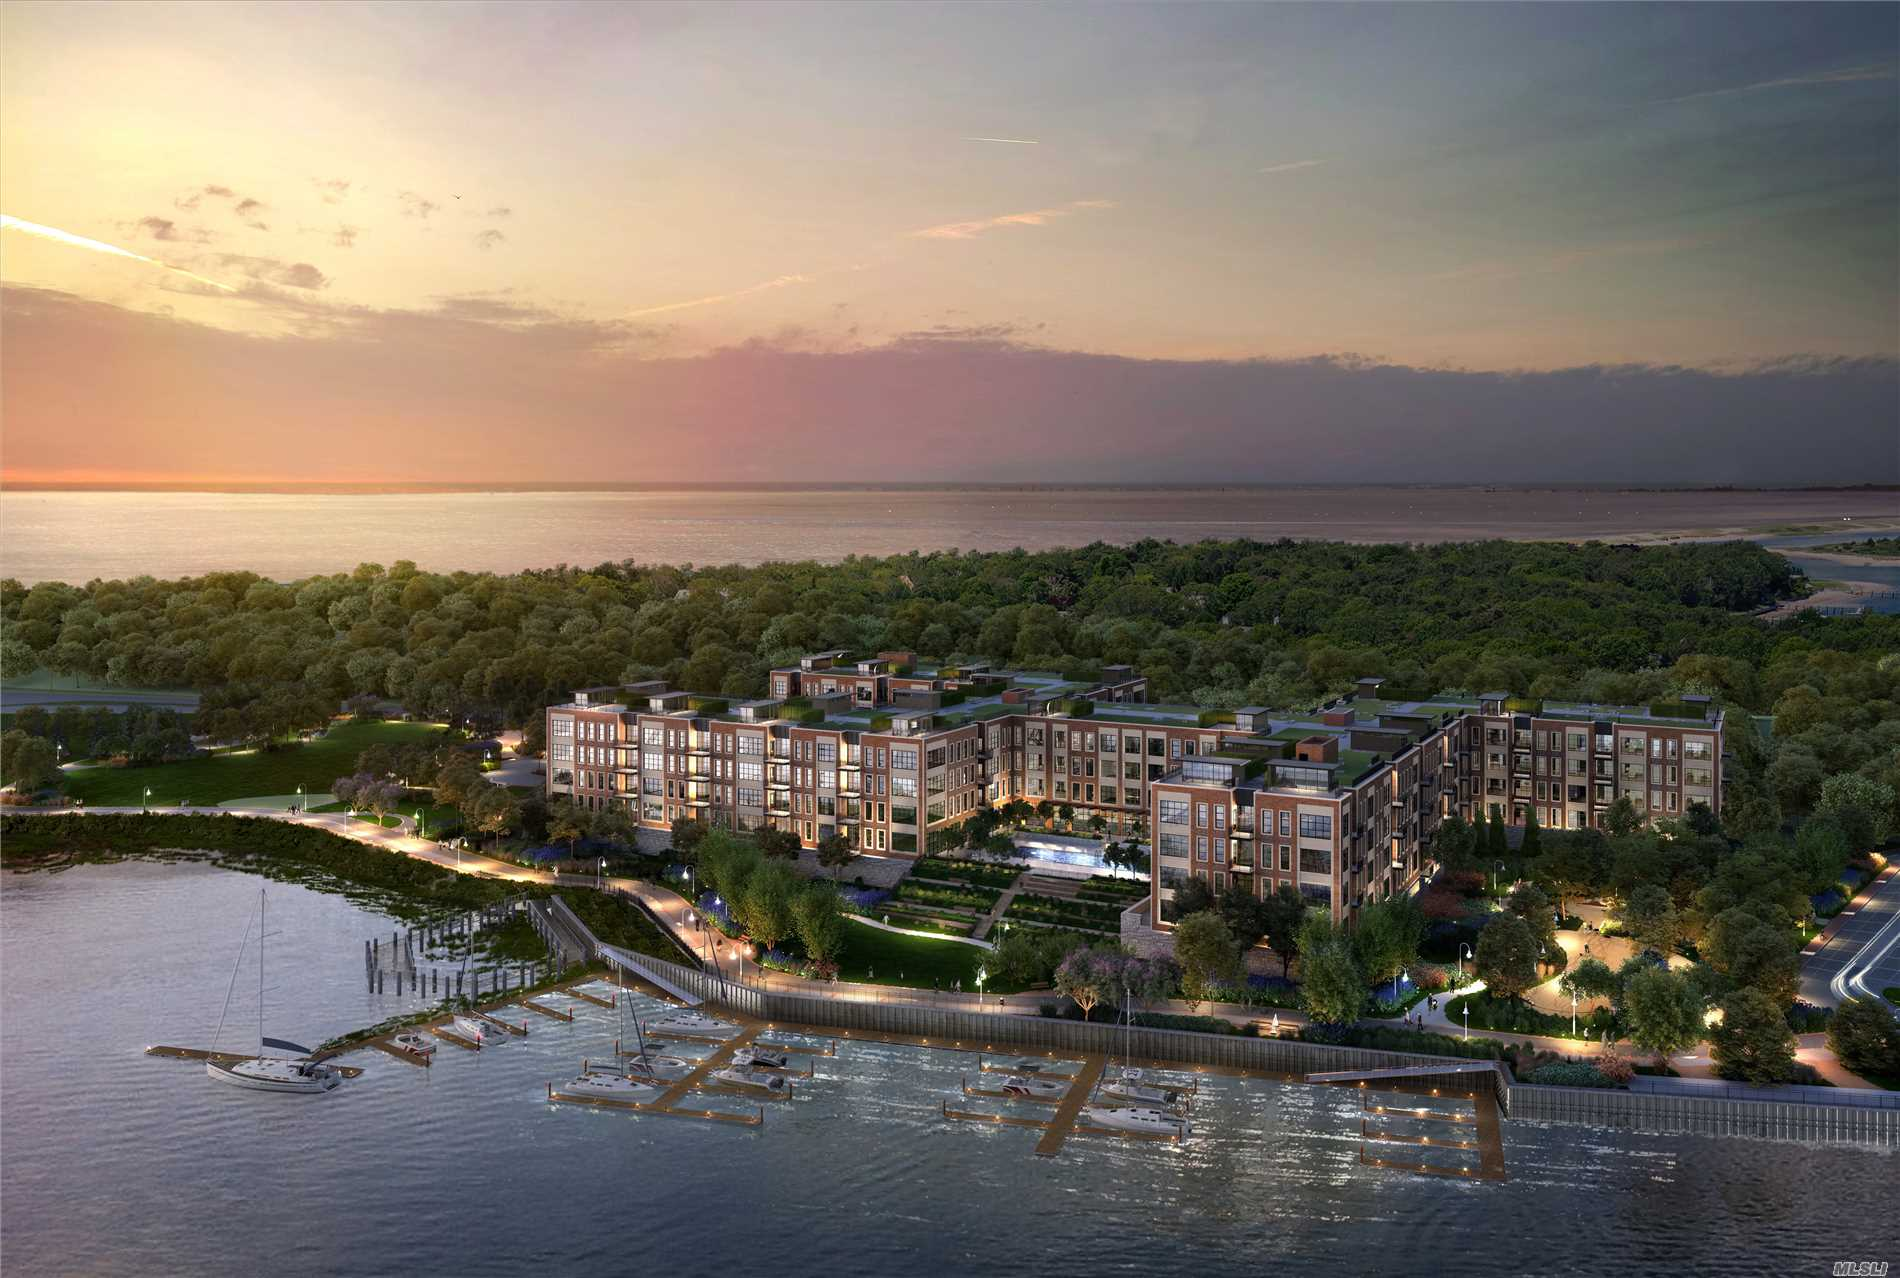 Property for sale at 100 Garvies Point Road # 1041, Glen Cove NY 11542, Glen Cove,  New York 11542